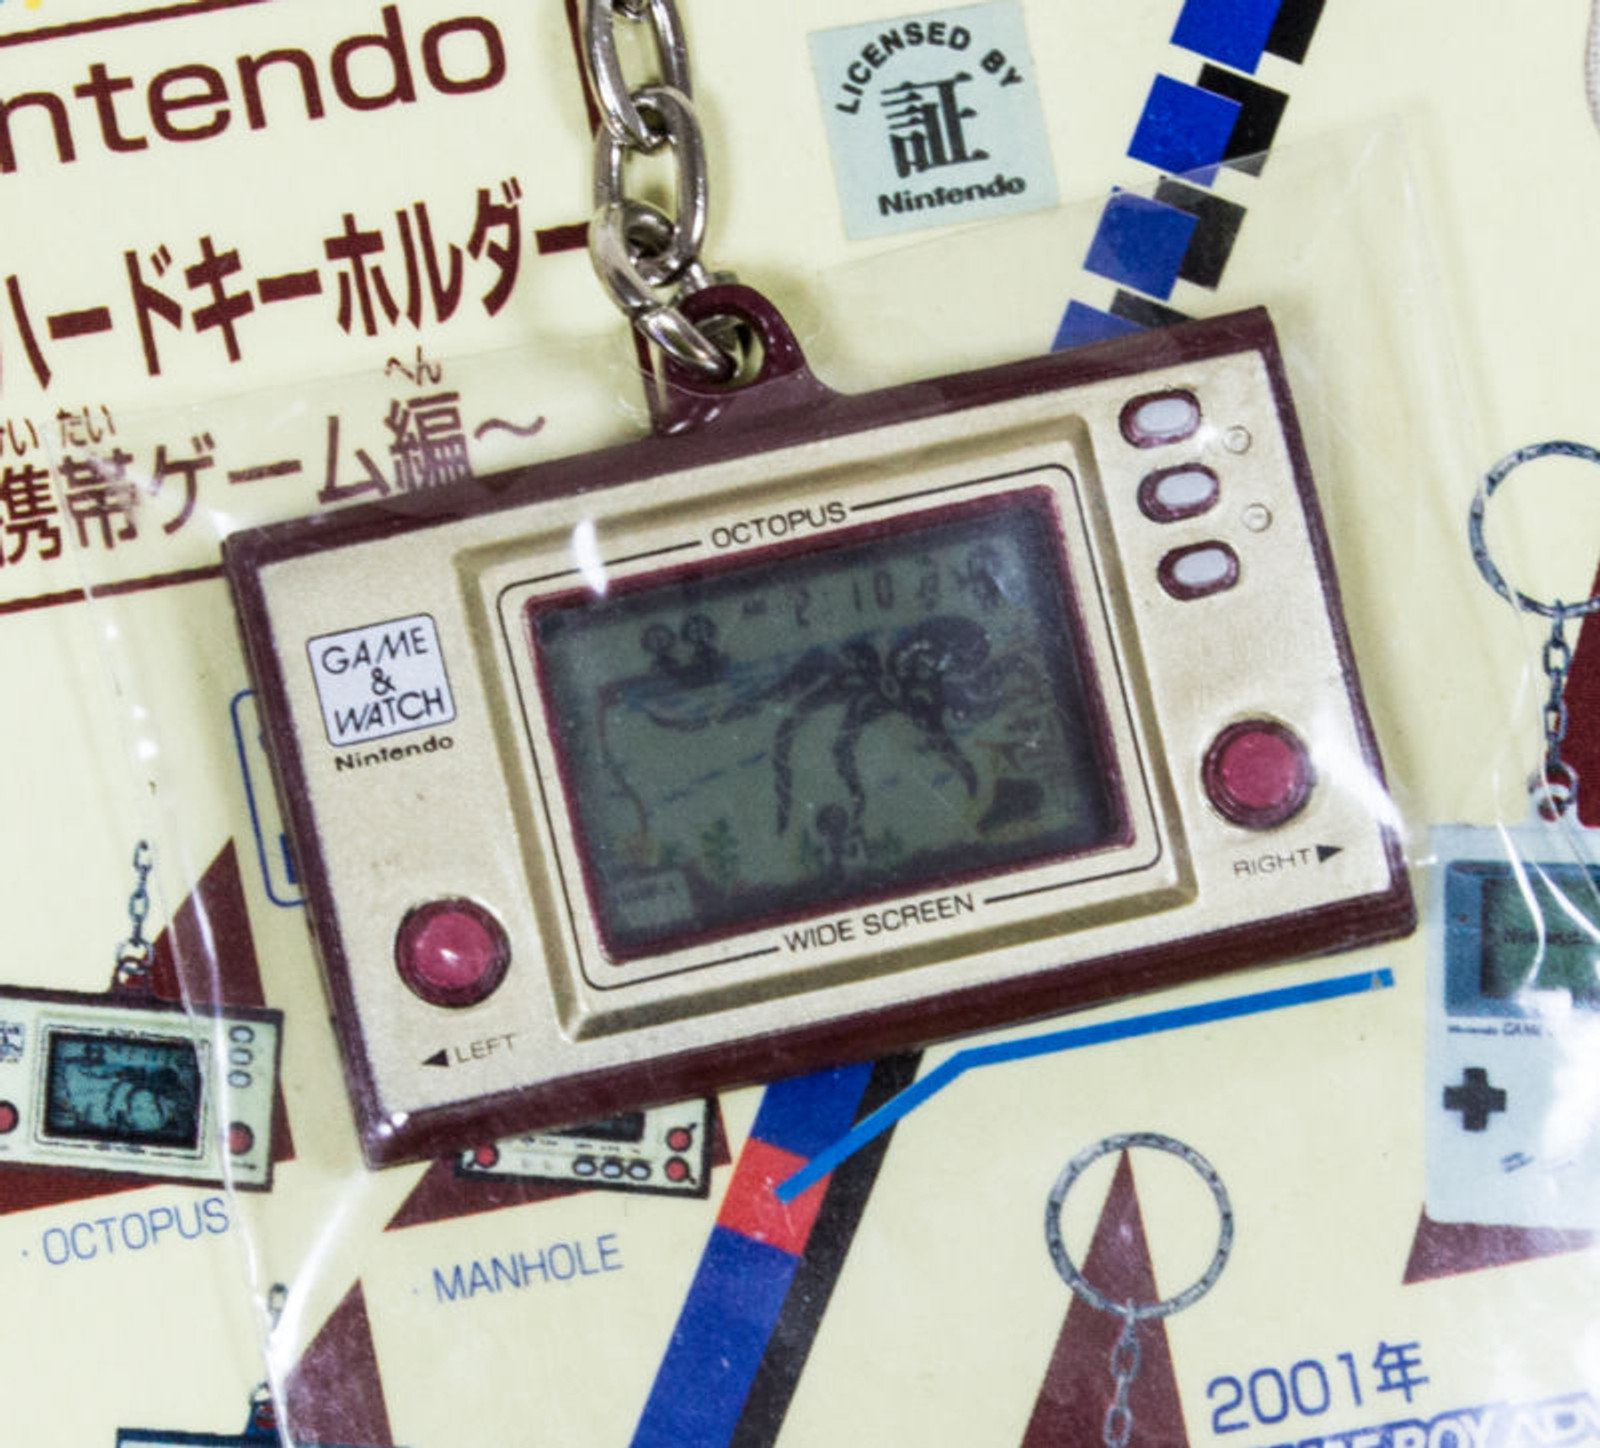 Nintendo Game & Watch History Miniature Figure Key Chain OCTOPUS JAPAN